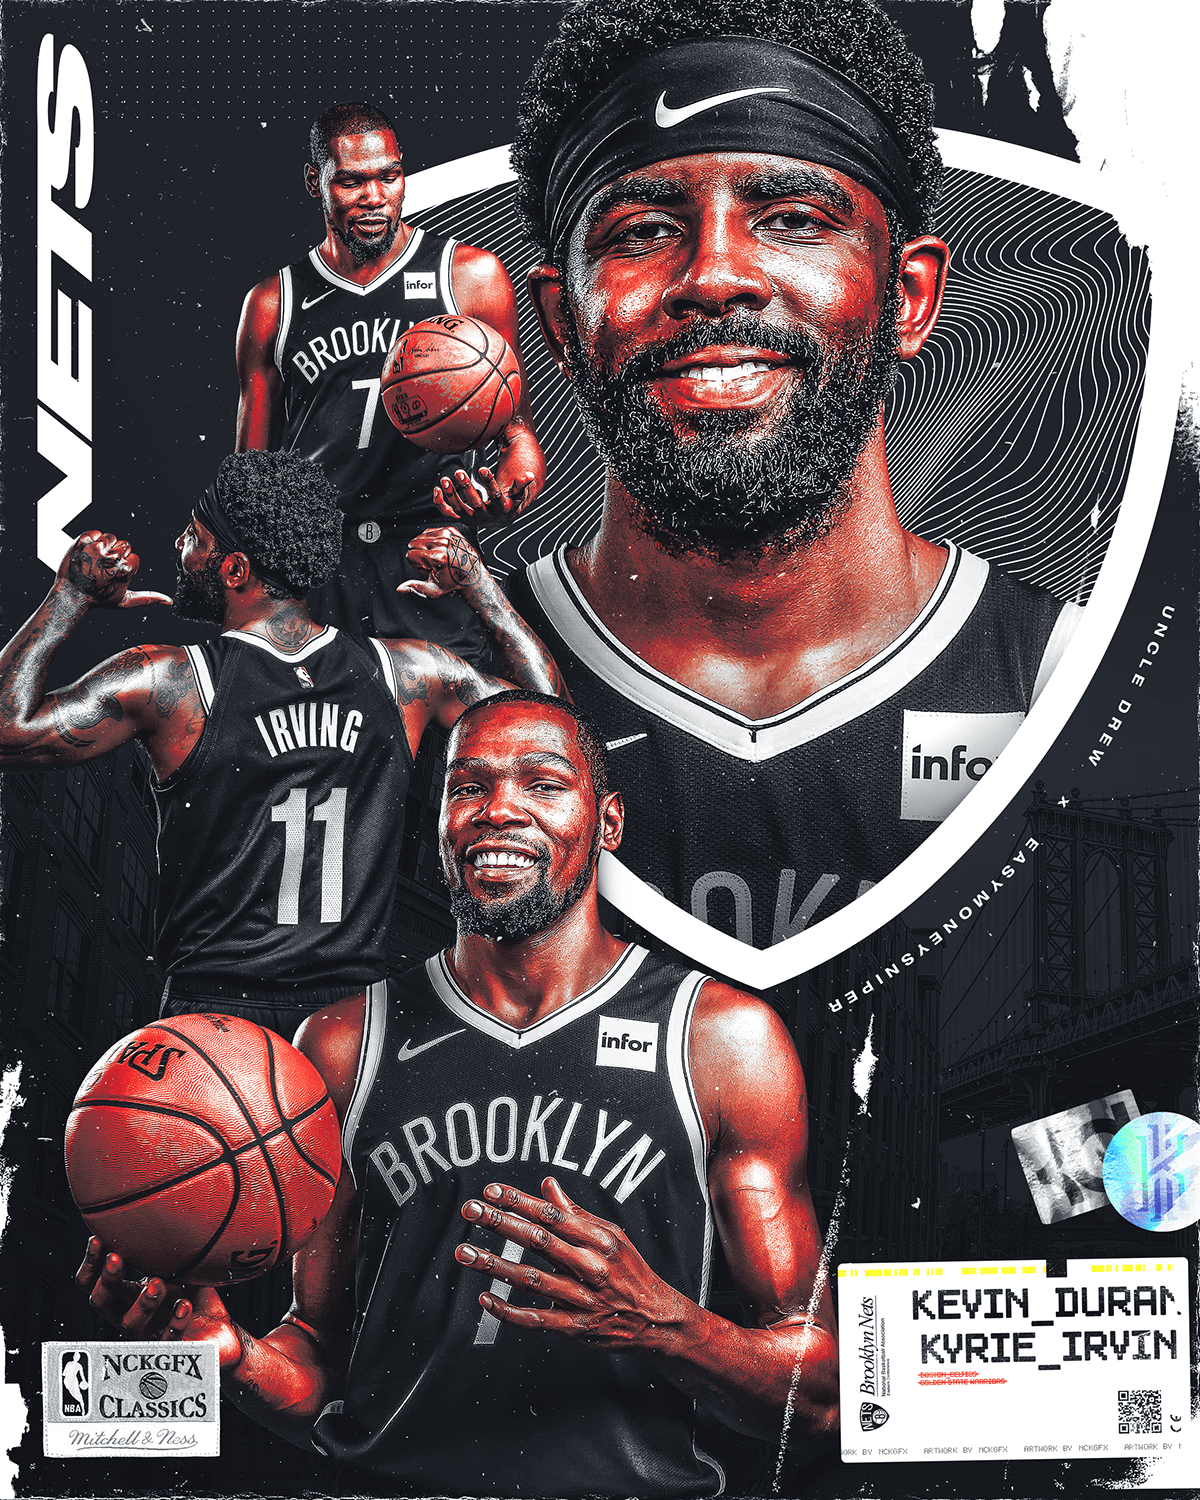 Kevin Durant Kyrie Irving Nick Arley Kyrie Irving Brooklyn Nets Brooklyn Nets Kevin Durant